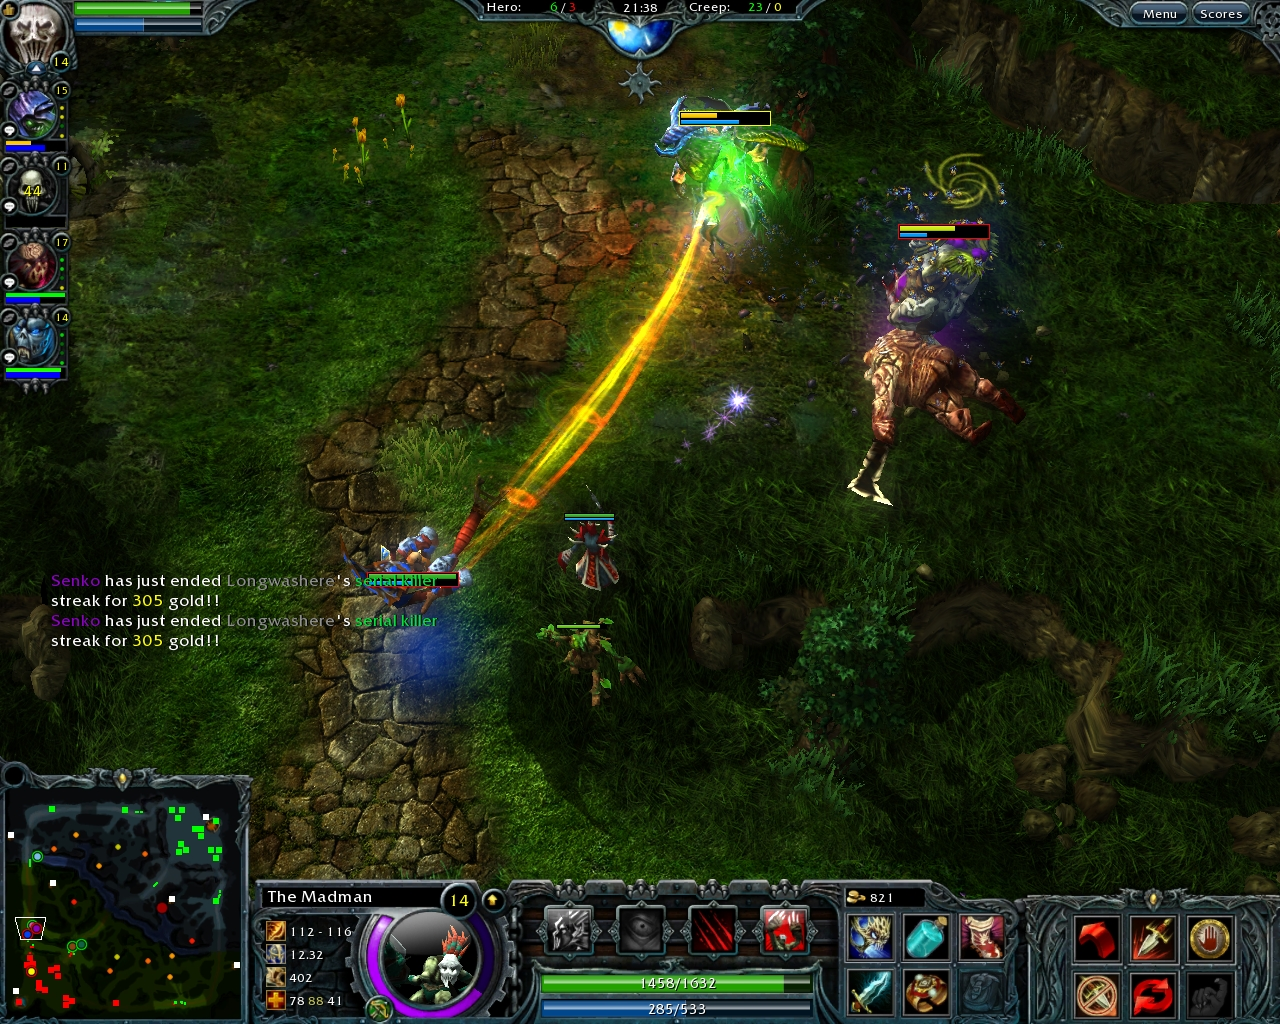 1280x1024 > Heroes Of Newerth Wallpapers